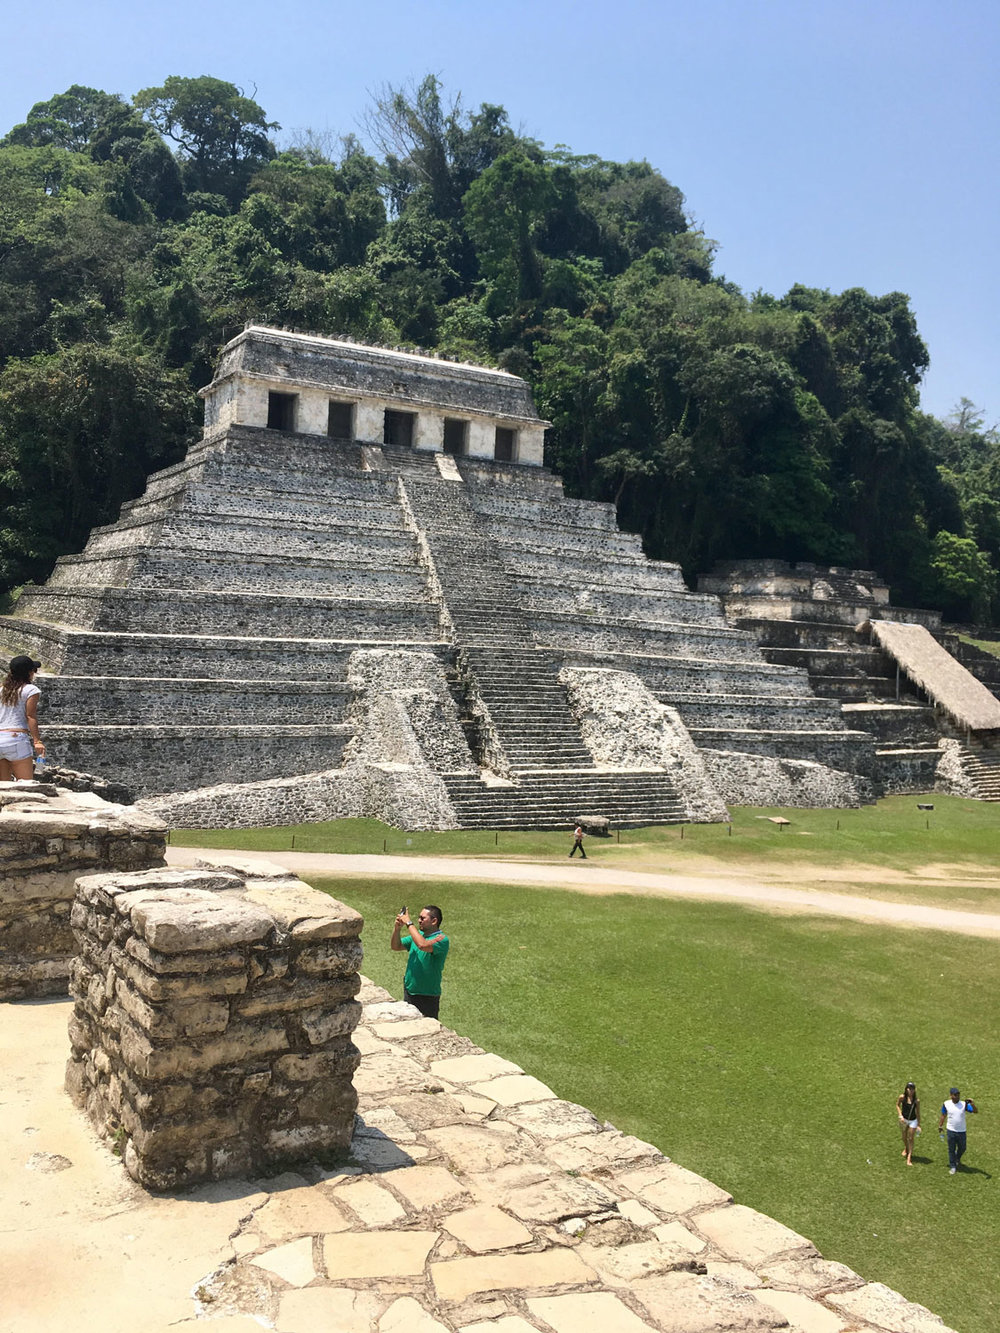 Hammocks_and_Ruins_Town_Villages_Chiapas_Lakes_Rivers_Jungles_Highlands_Ruins_Palenque_Maya_City_46.jpg